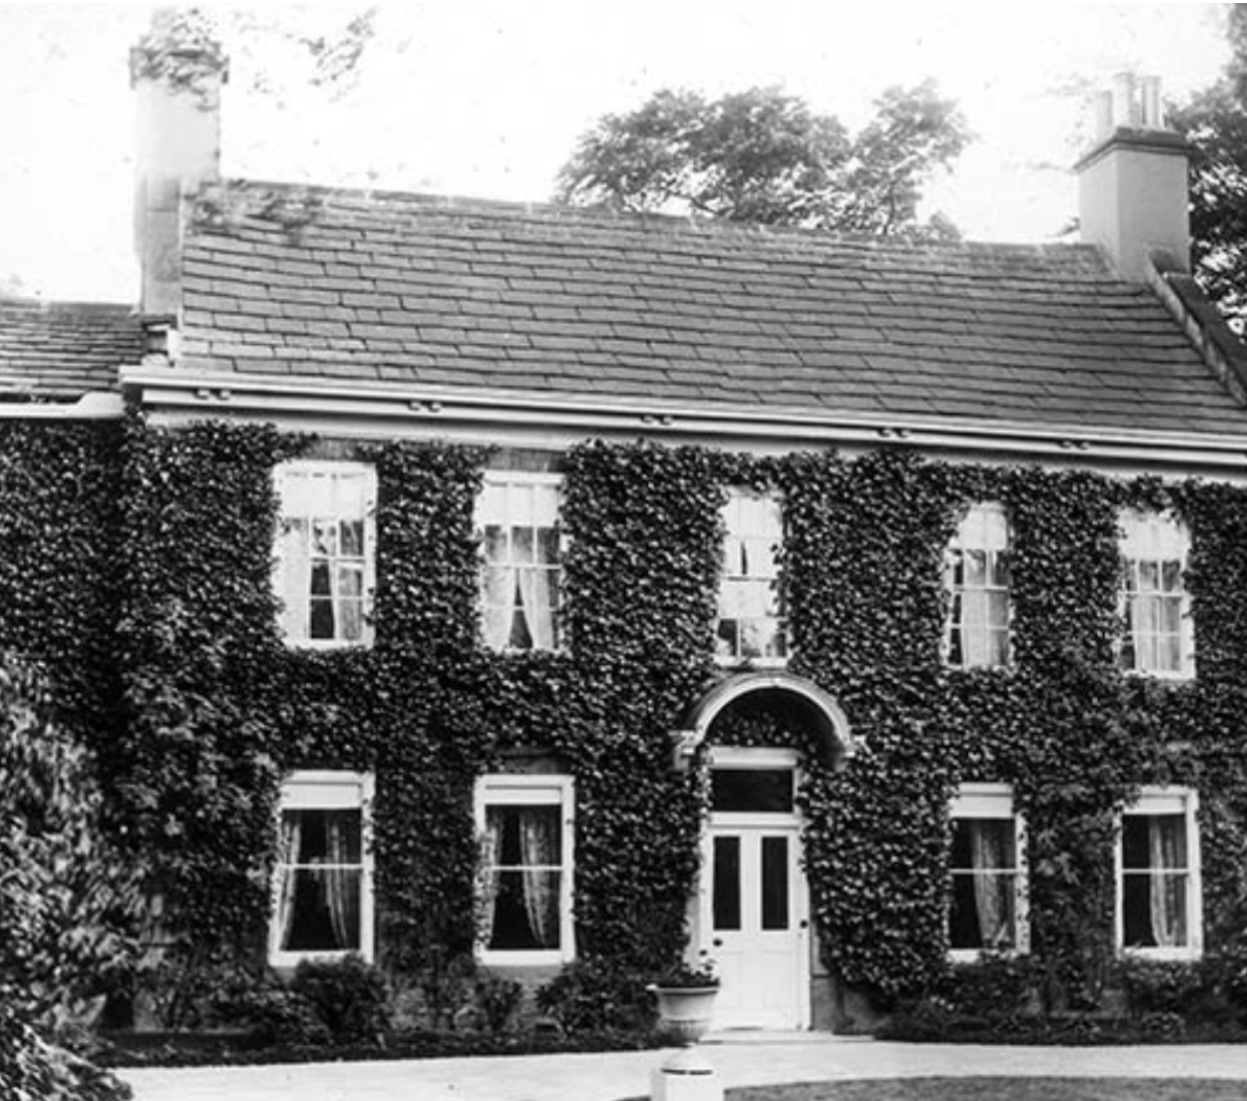 Old Manor House (demolished 1900, for terrace development)